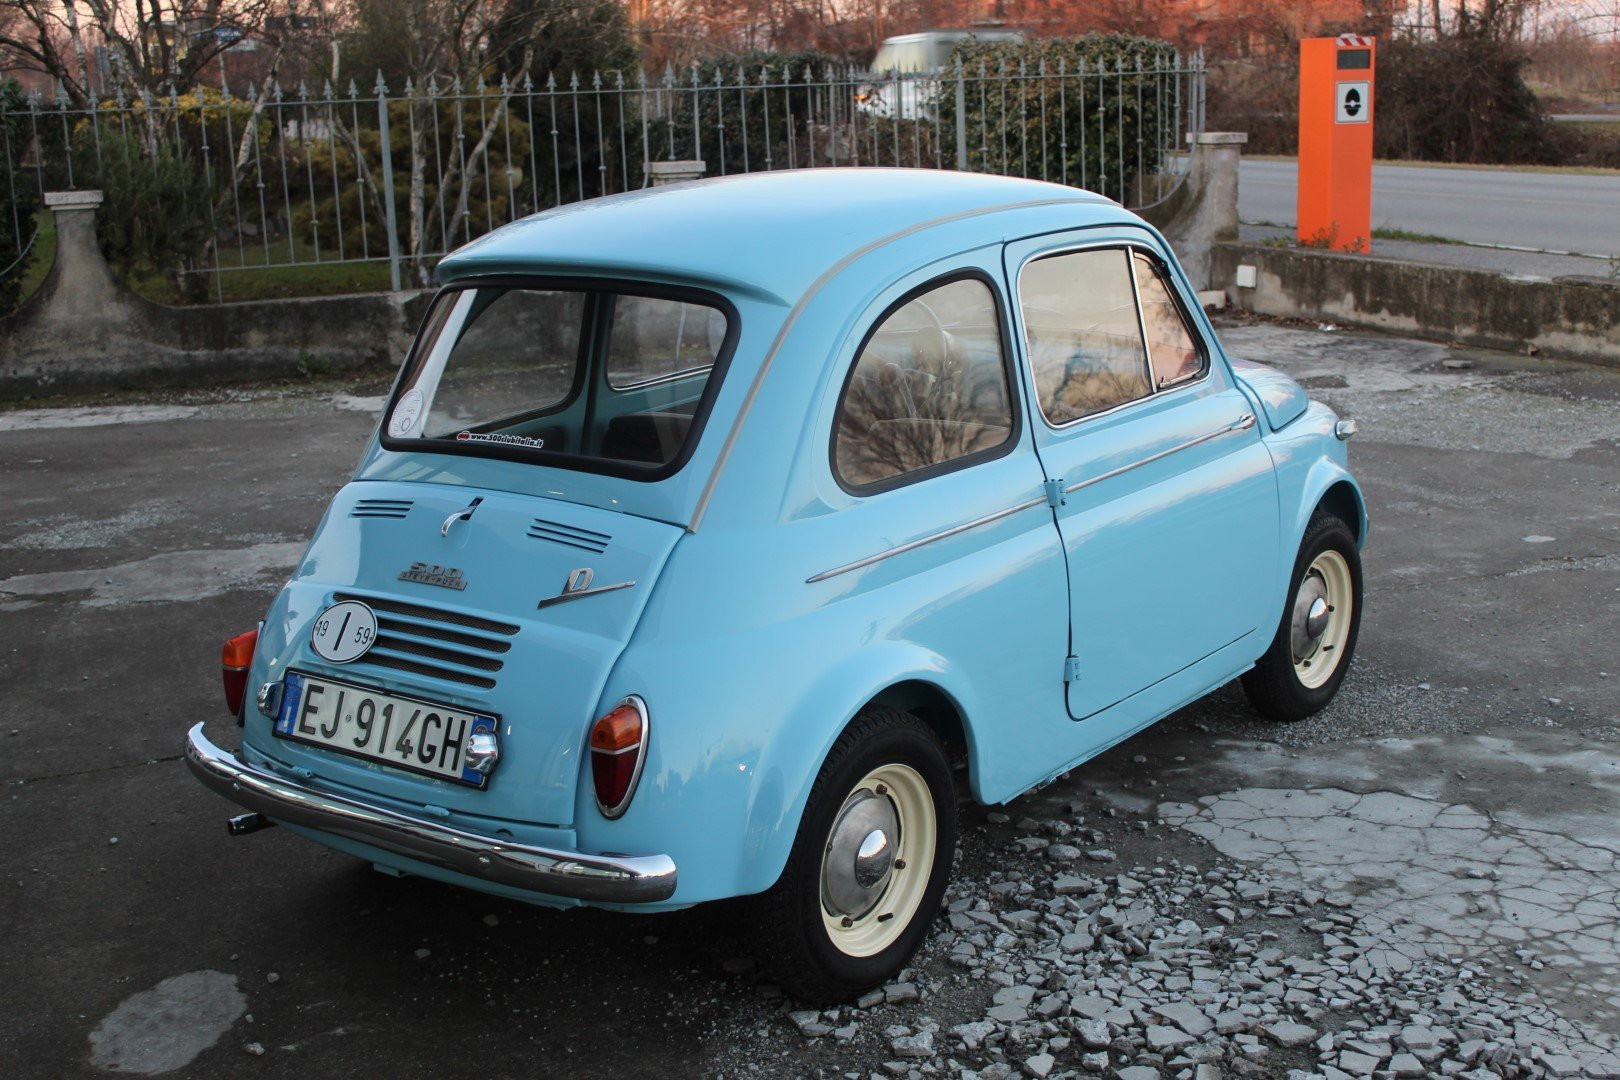 1967 Fiat 500 N Syer Puch 500 D For Sale (picture 2 of 6)